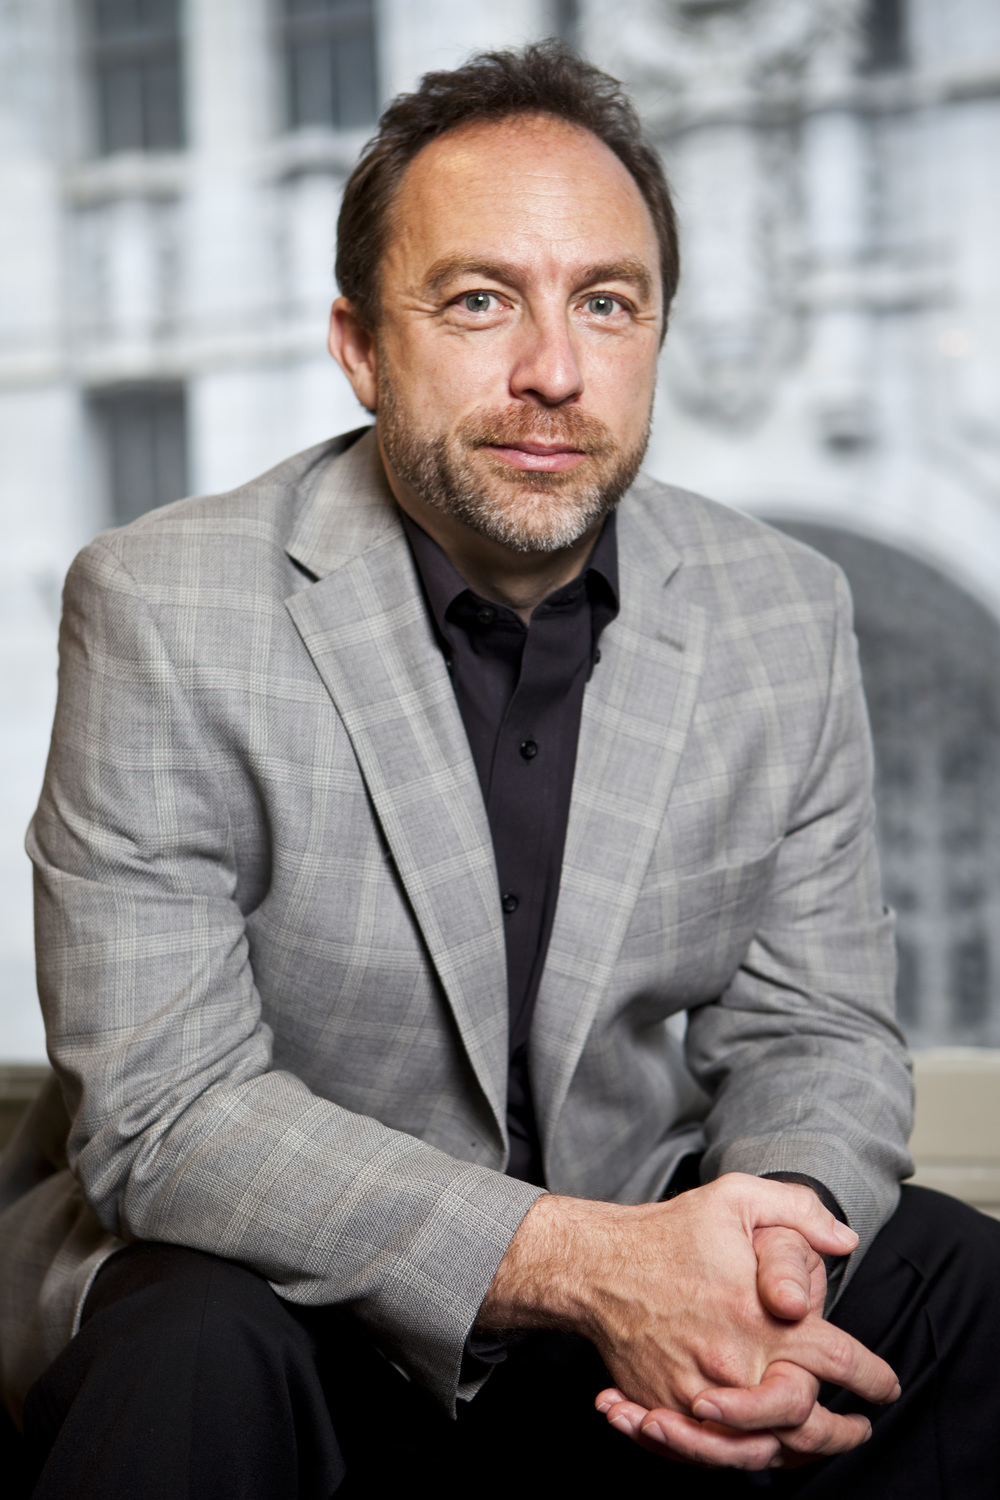 Jimmy_Wales_July_2010_3.jpg